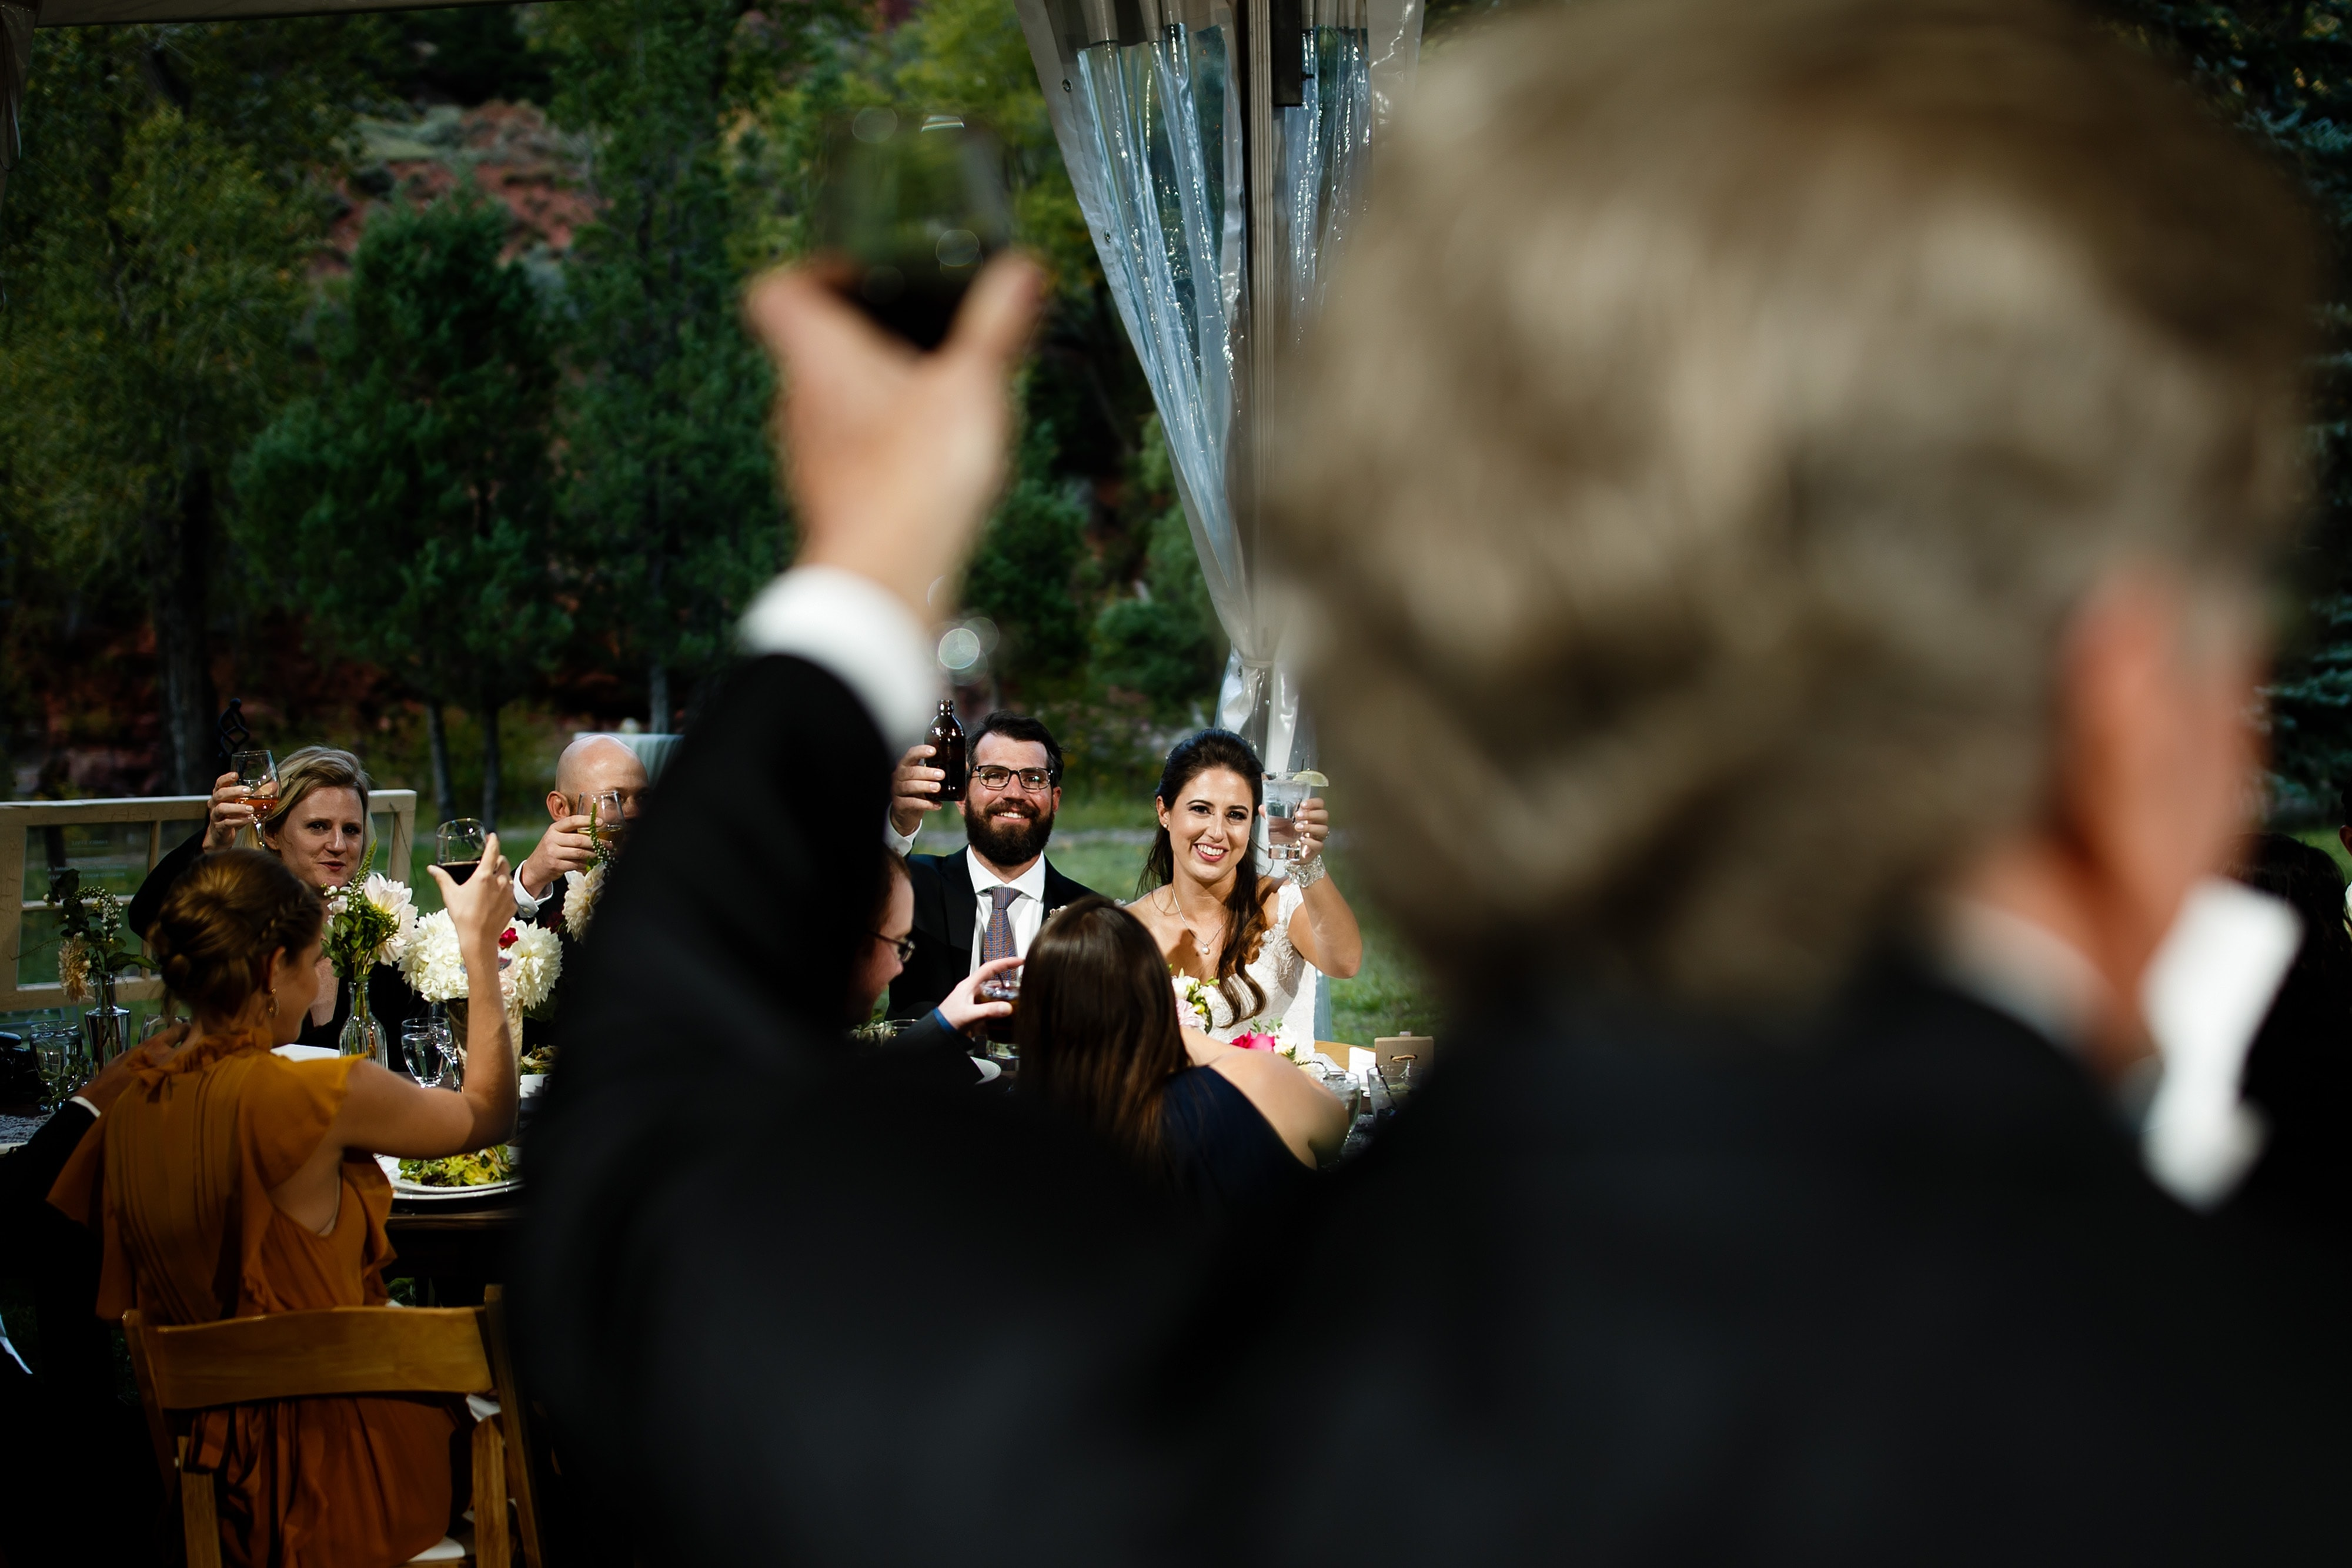 The father of the bride toasts the couple during the reception